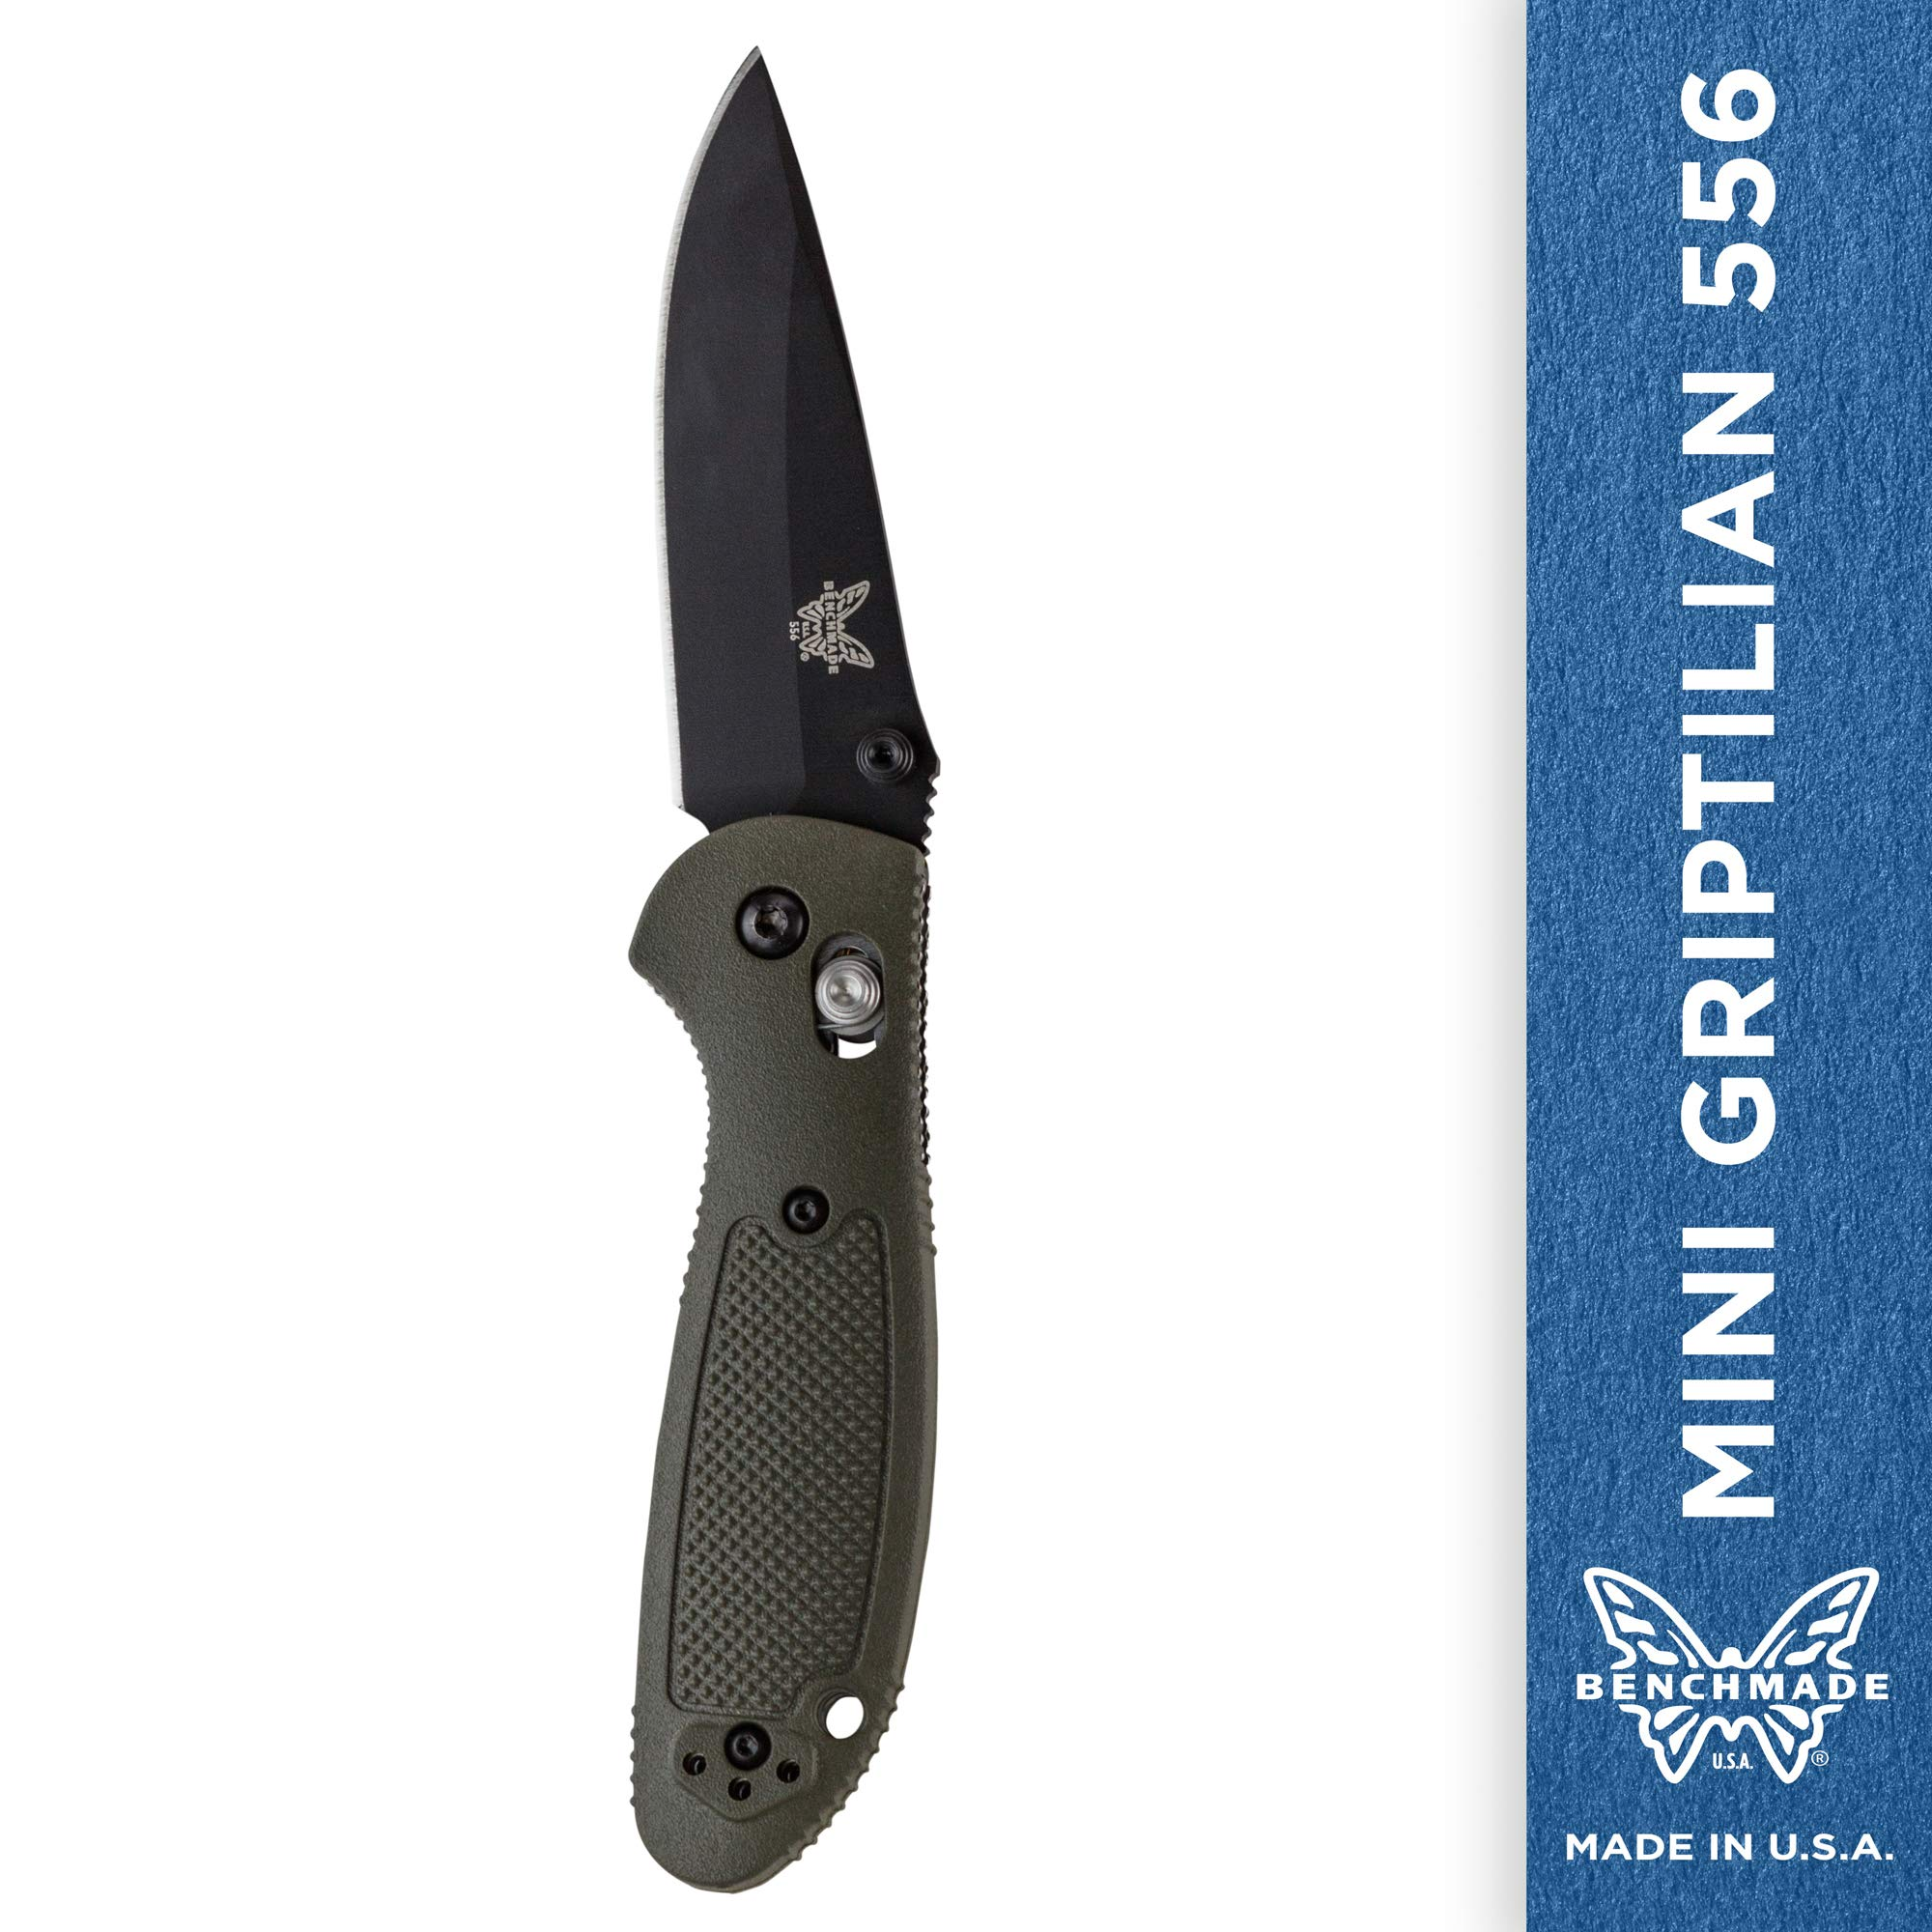 Benchmade - Mini Griptilian 556 EDC Manual Open Folding Knife Made in USA with CPM-S30V Steel, Drop-Point Blade, Plain Edge, Coated Finish, Olive Handle